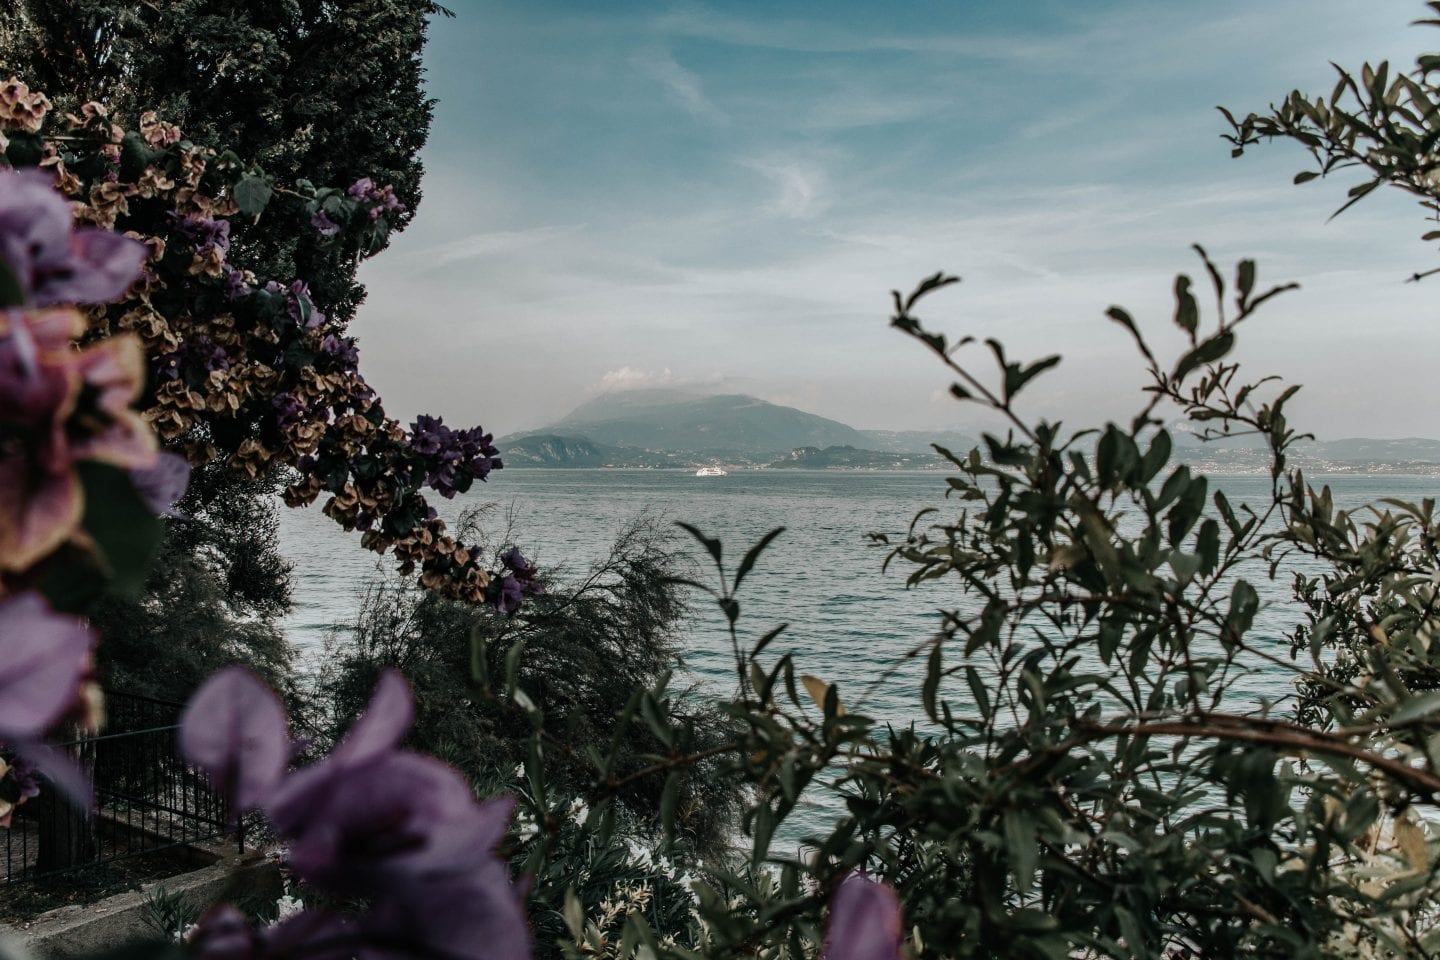 Photo of Lake Garda near Bergamo, Italy with purple flowers and plants in the foreground